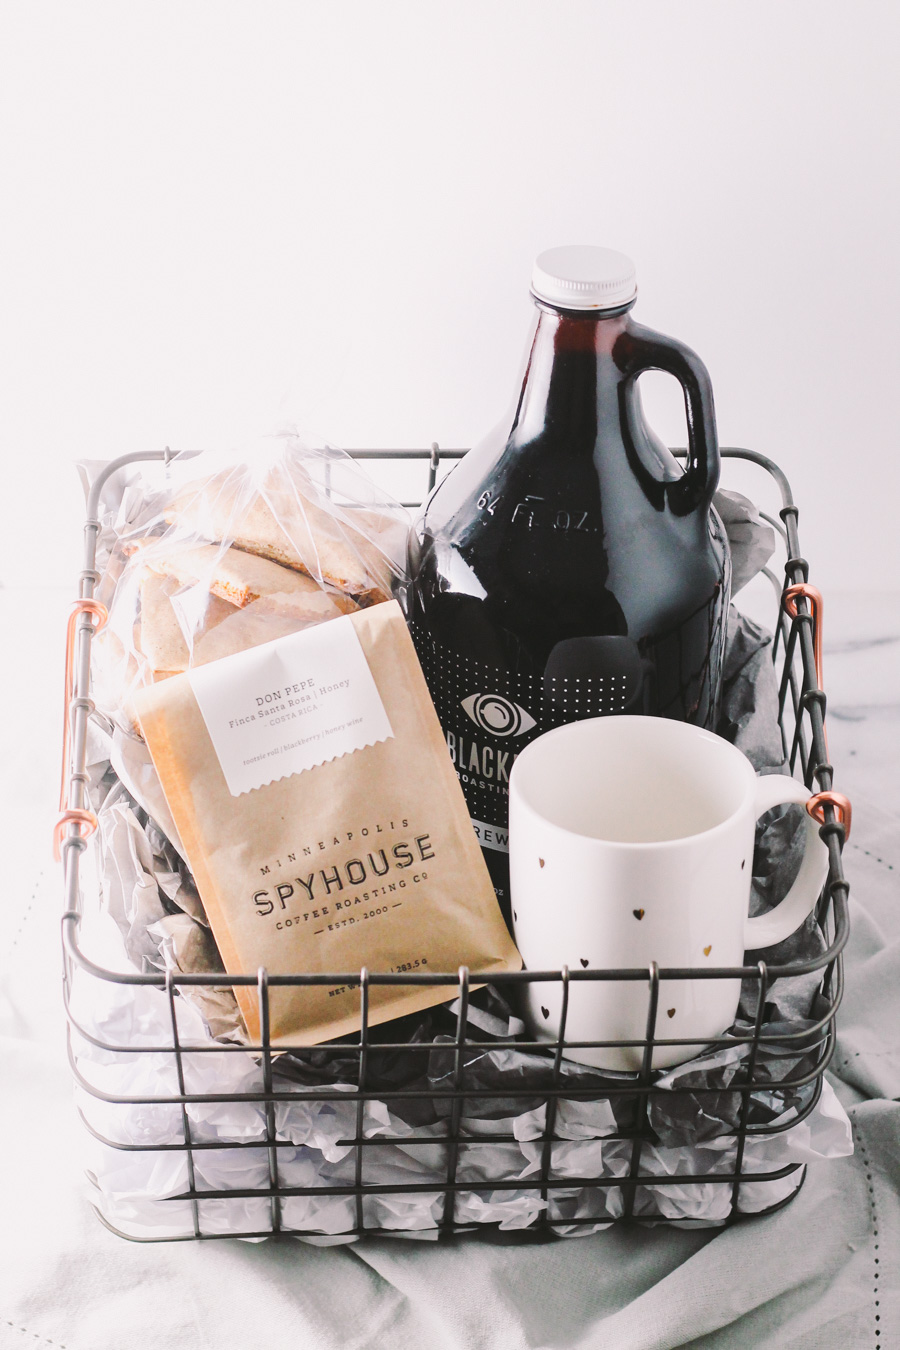 ... treat the coffee lover in your life with a homemade coffee gift basket this holiday season